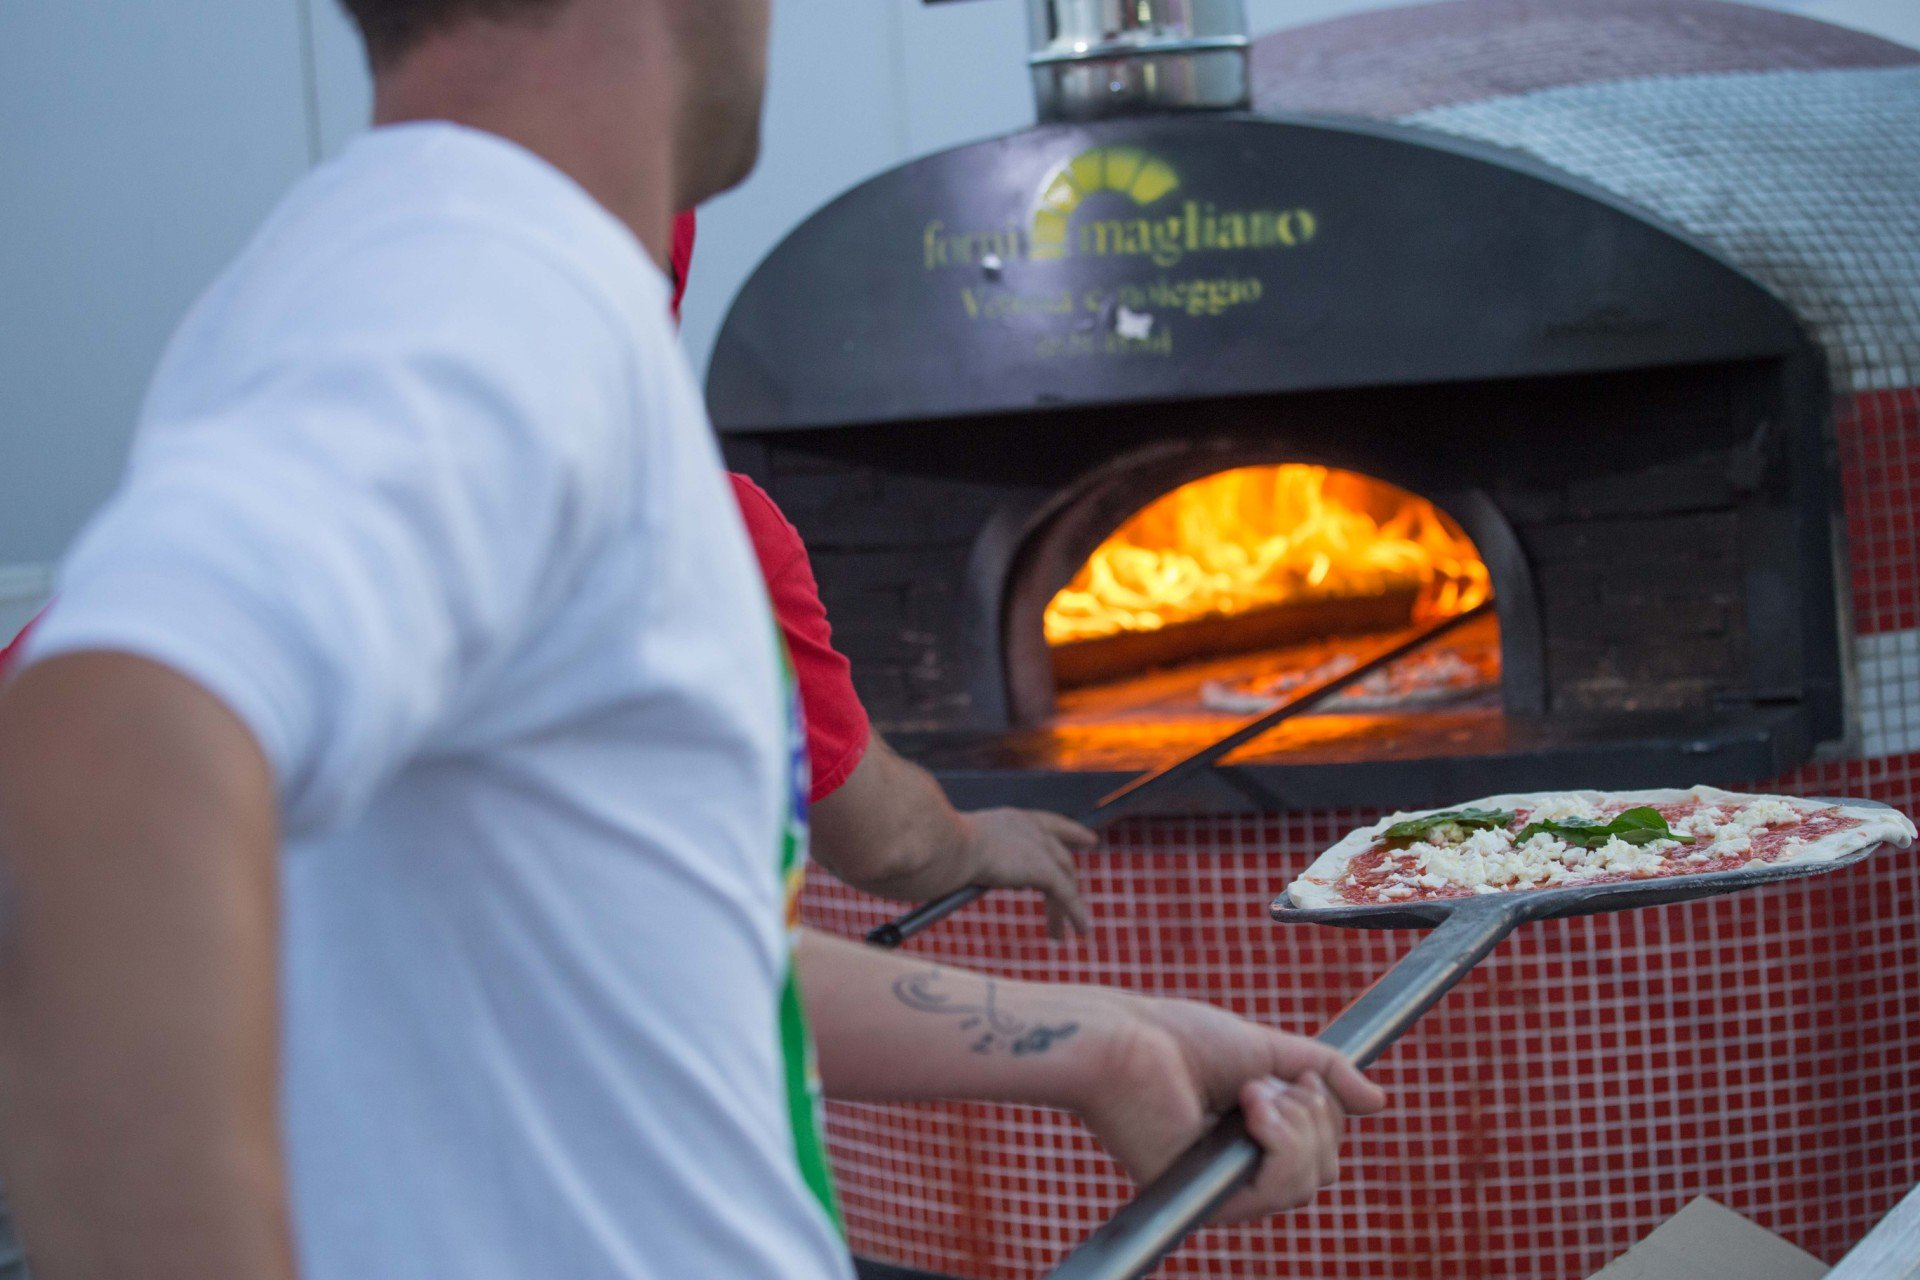 Napoli Pizza Village Festival in Naples and Pompeii - Best Season 2020